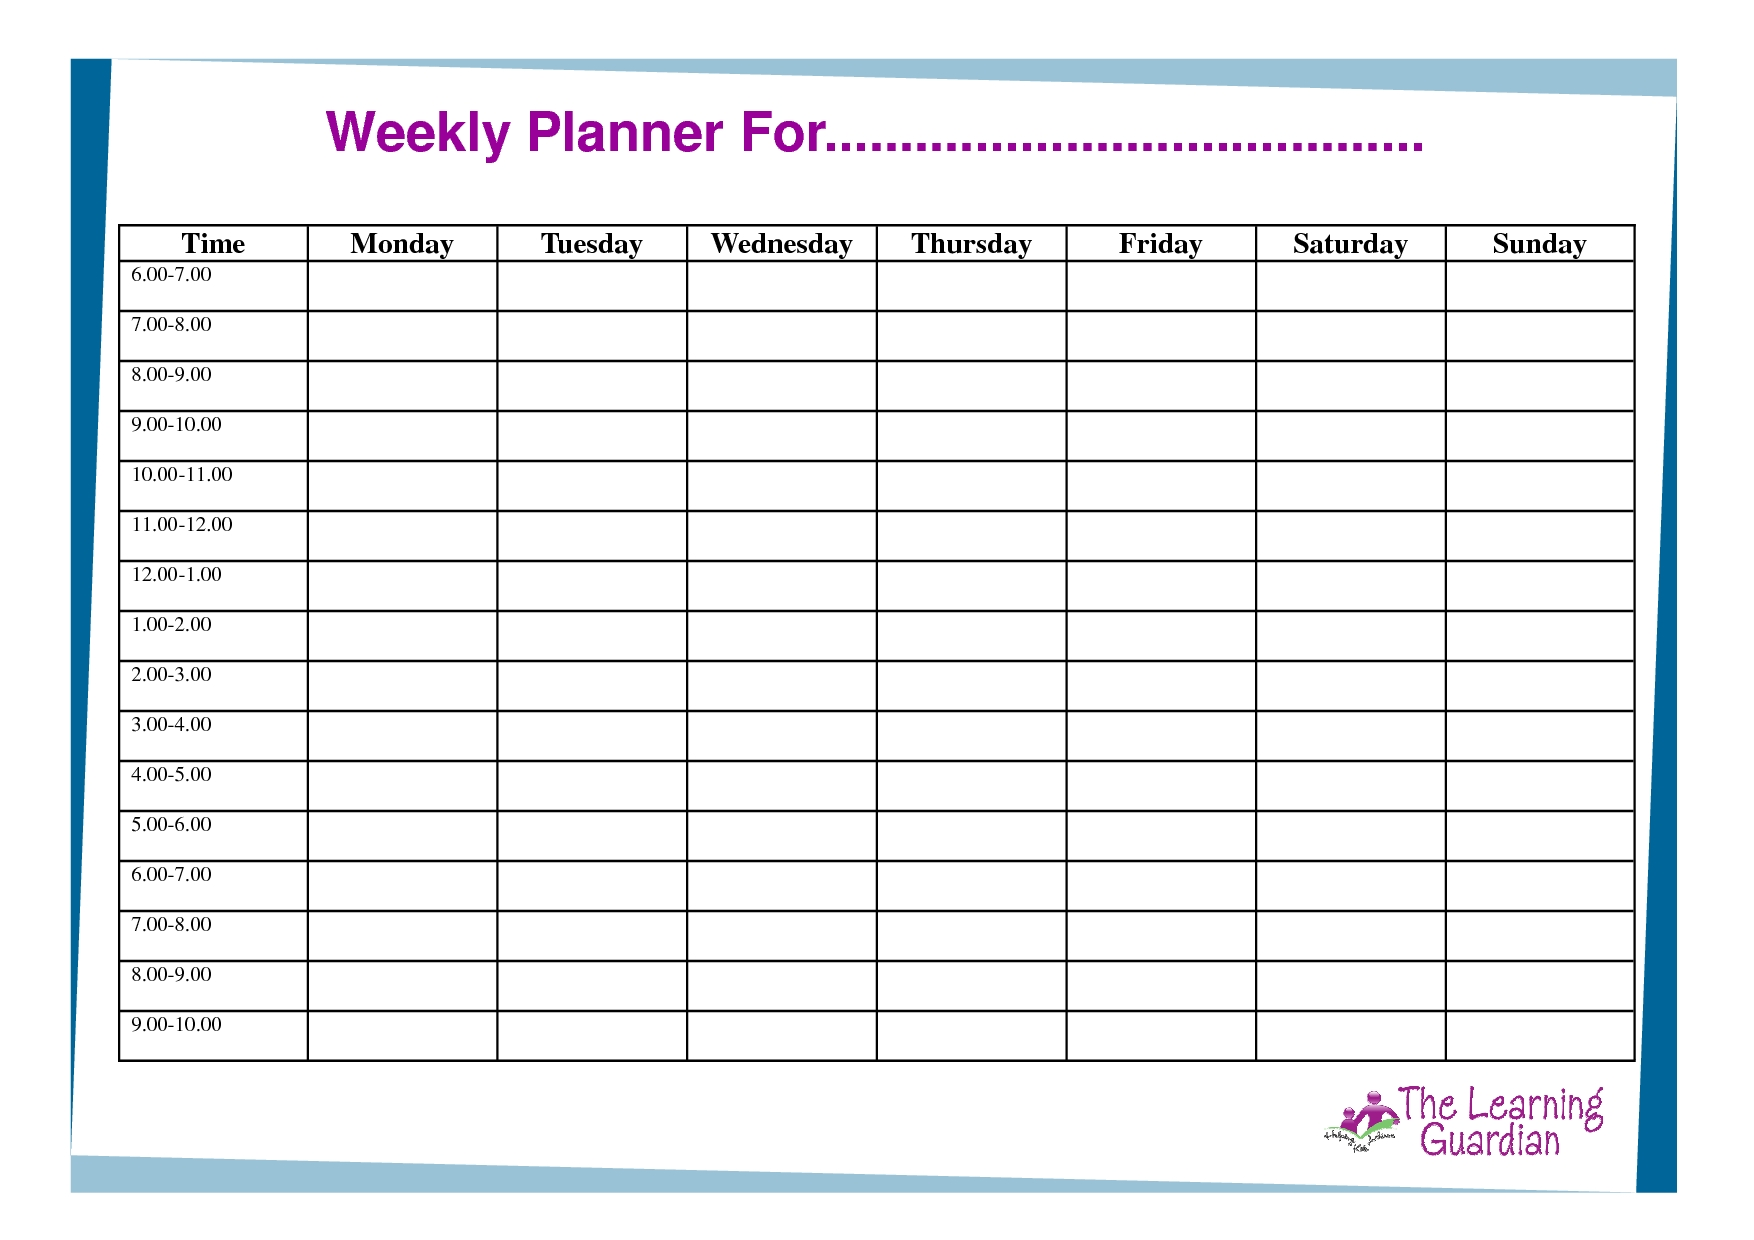 Free+Printable+Weekly+Planner+Templates In 2020 (With Images